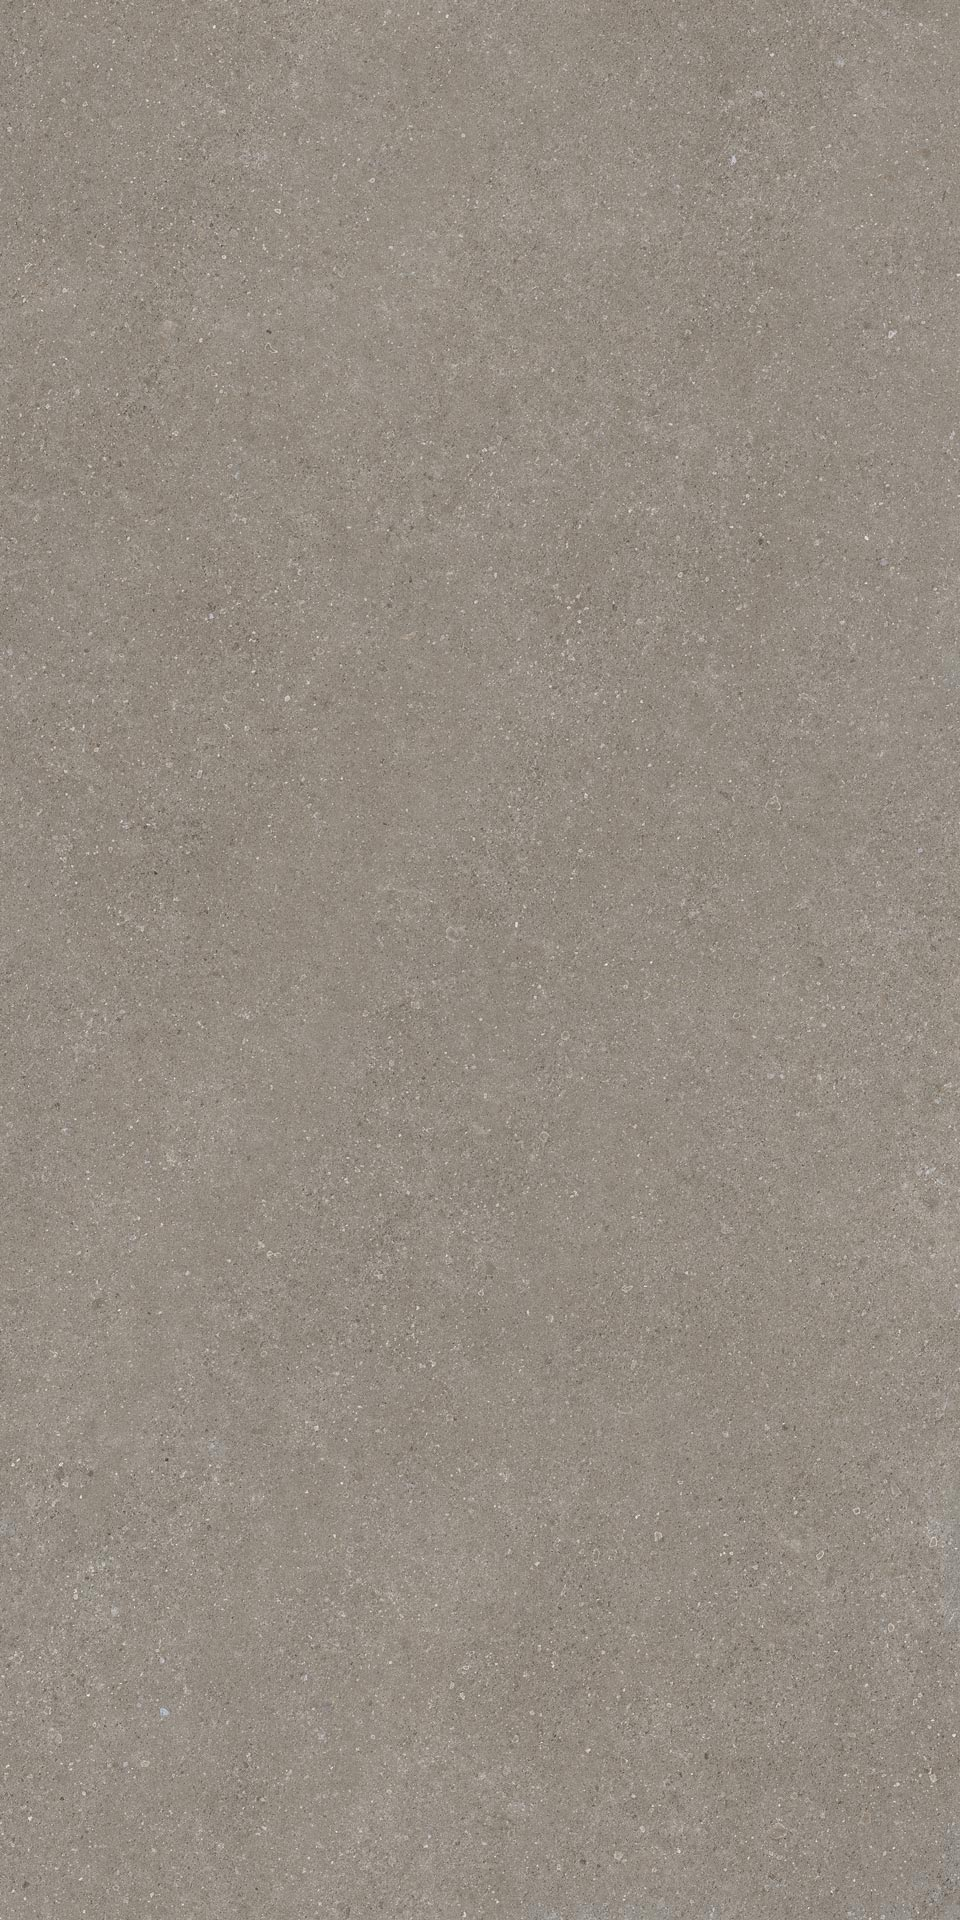 kone-grey-porcelain-stoneware-stone-look-thickness-9mm